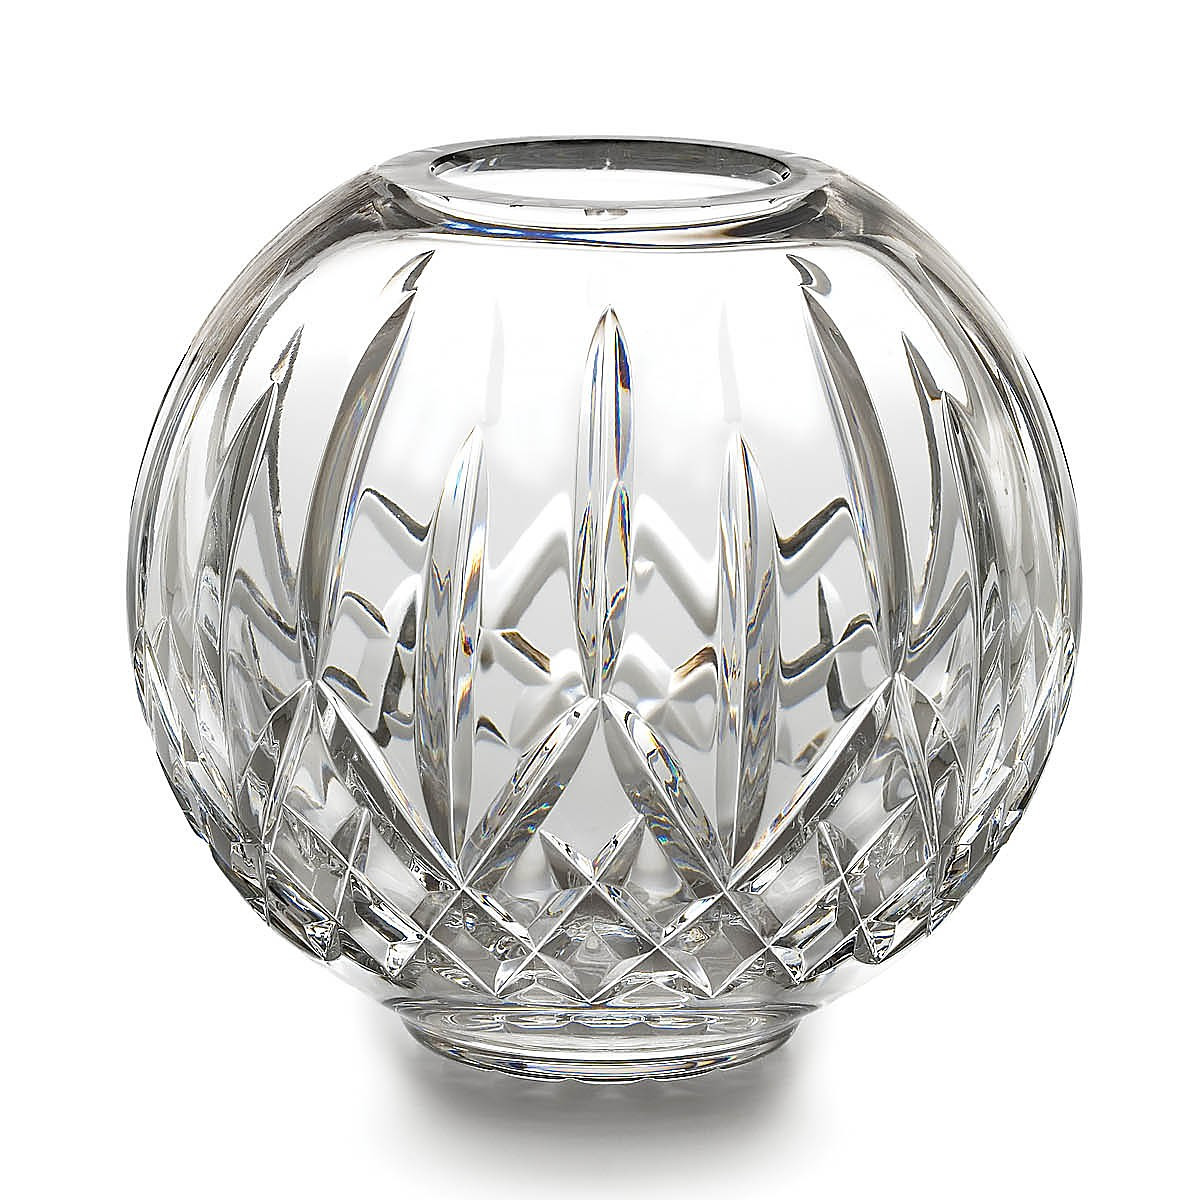 waterford sugar bud vase of waterford crystal colorful waterford crystal lismore rose bowl pertaining to waterfordcrystalcolorful waterford crystal lismore rose bowl price 250 00 color crystal